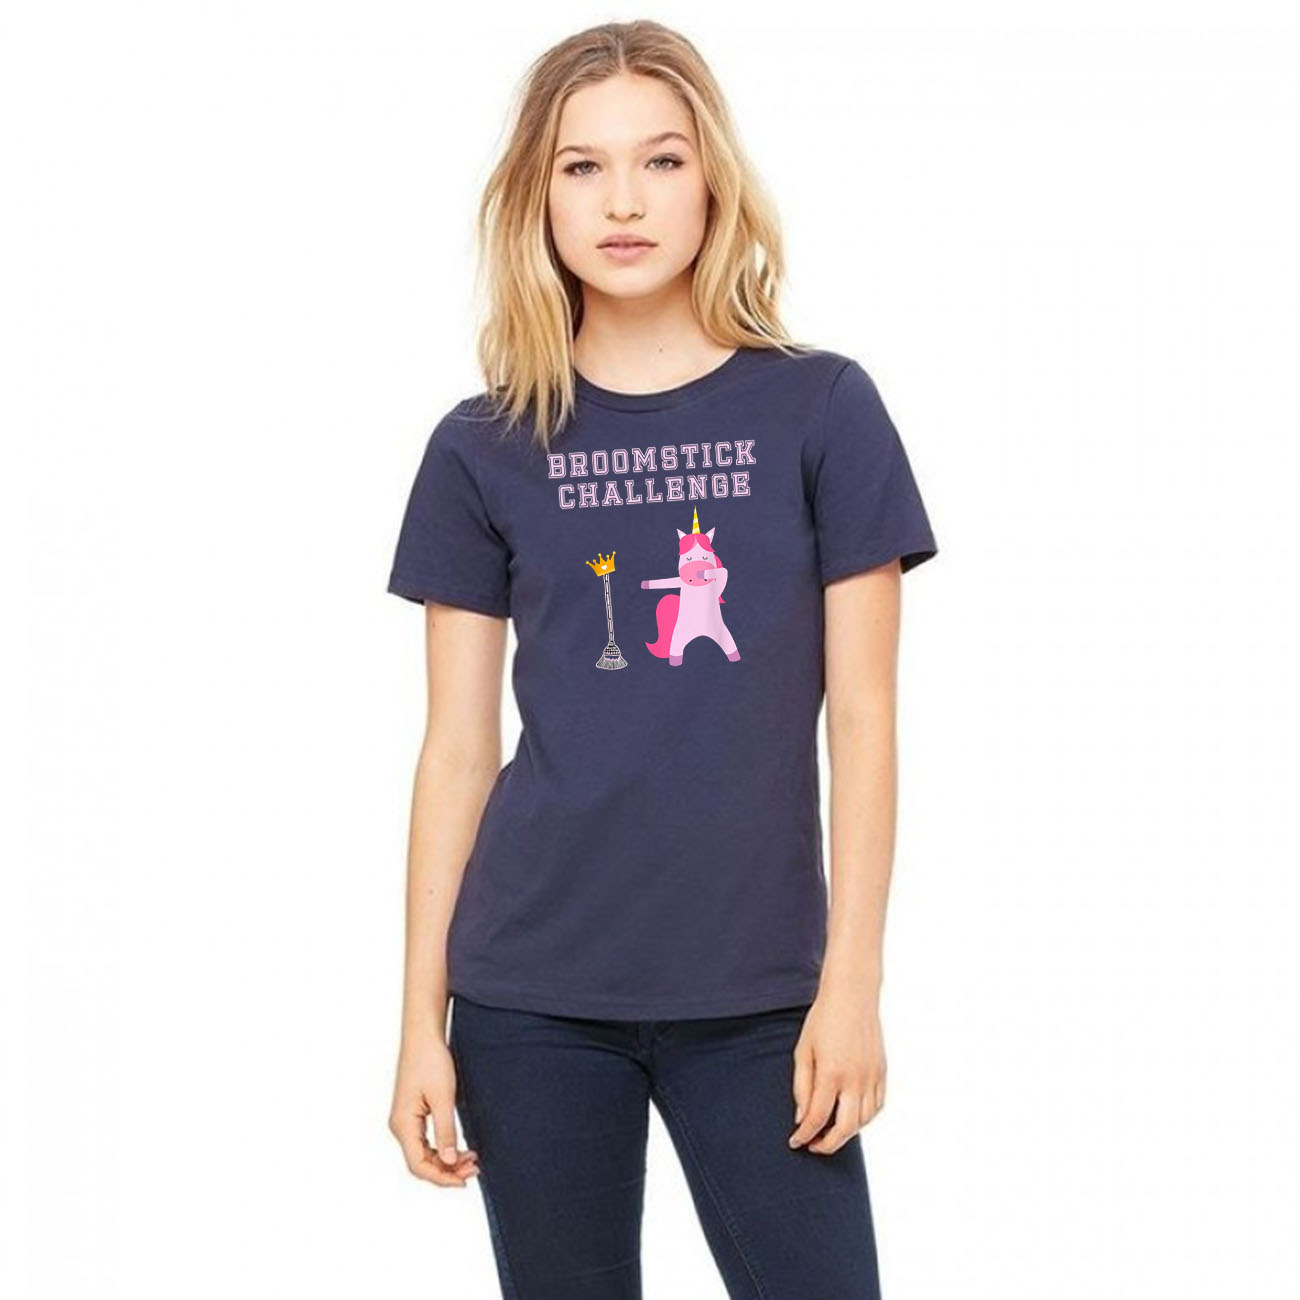 #broomstickchallenge Broomstick Challenge Champion Unicorn Classic T-Shirt